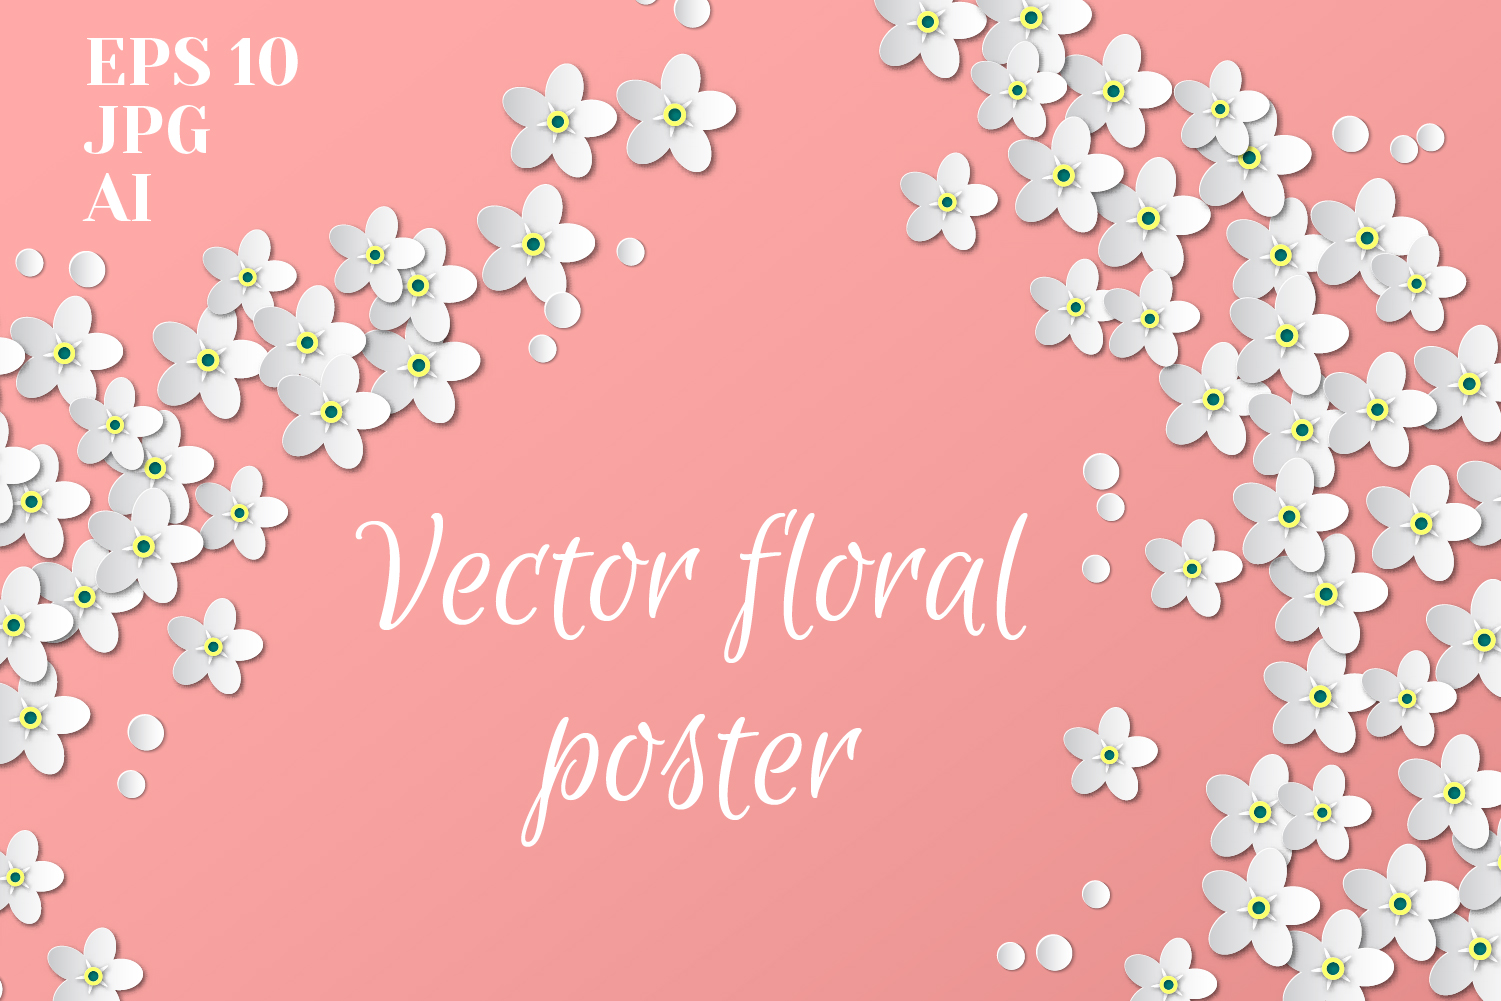 Forget-me-not posters example image 1